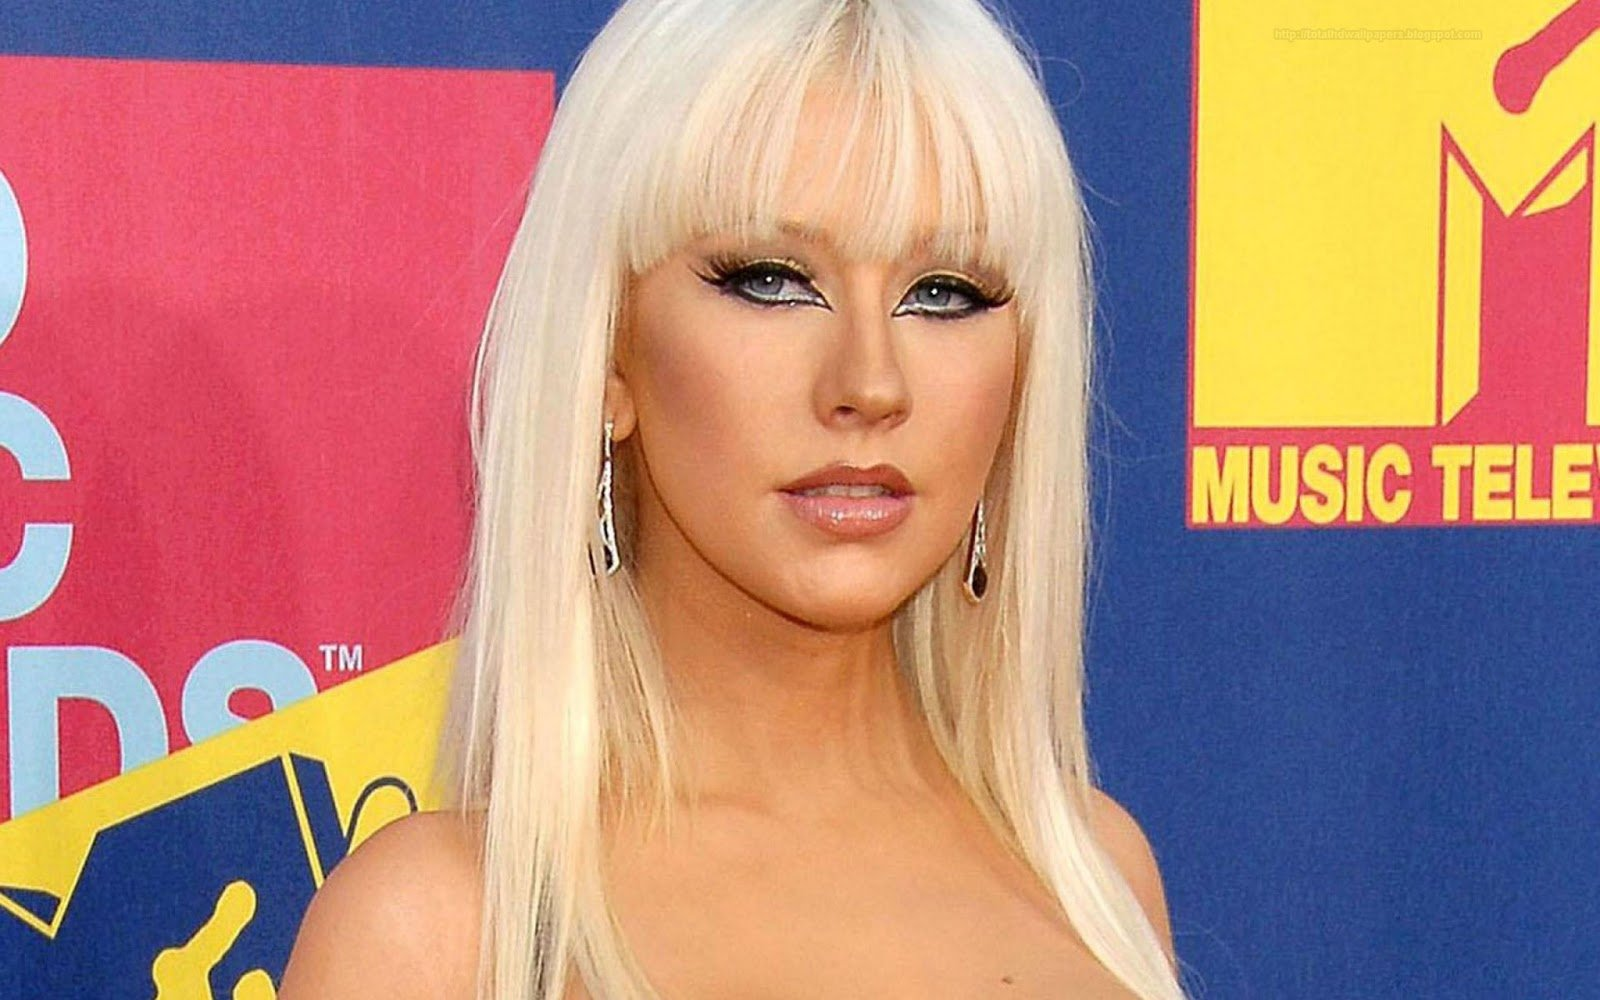 Hollywood actress wallpapers Christina Aguilera hd wallpapers 1600x1000